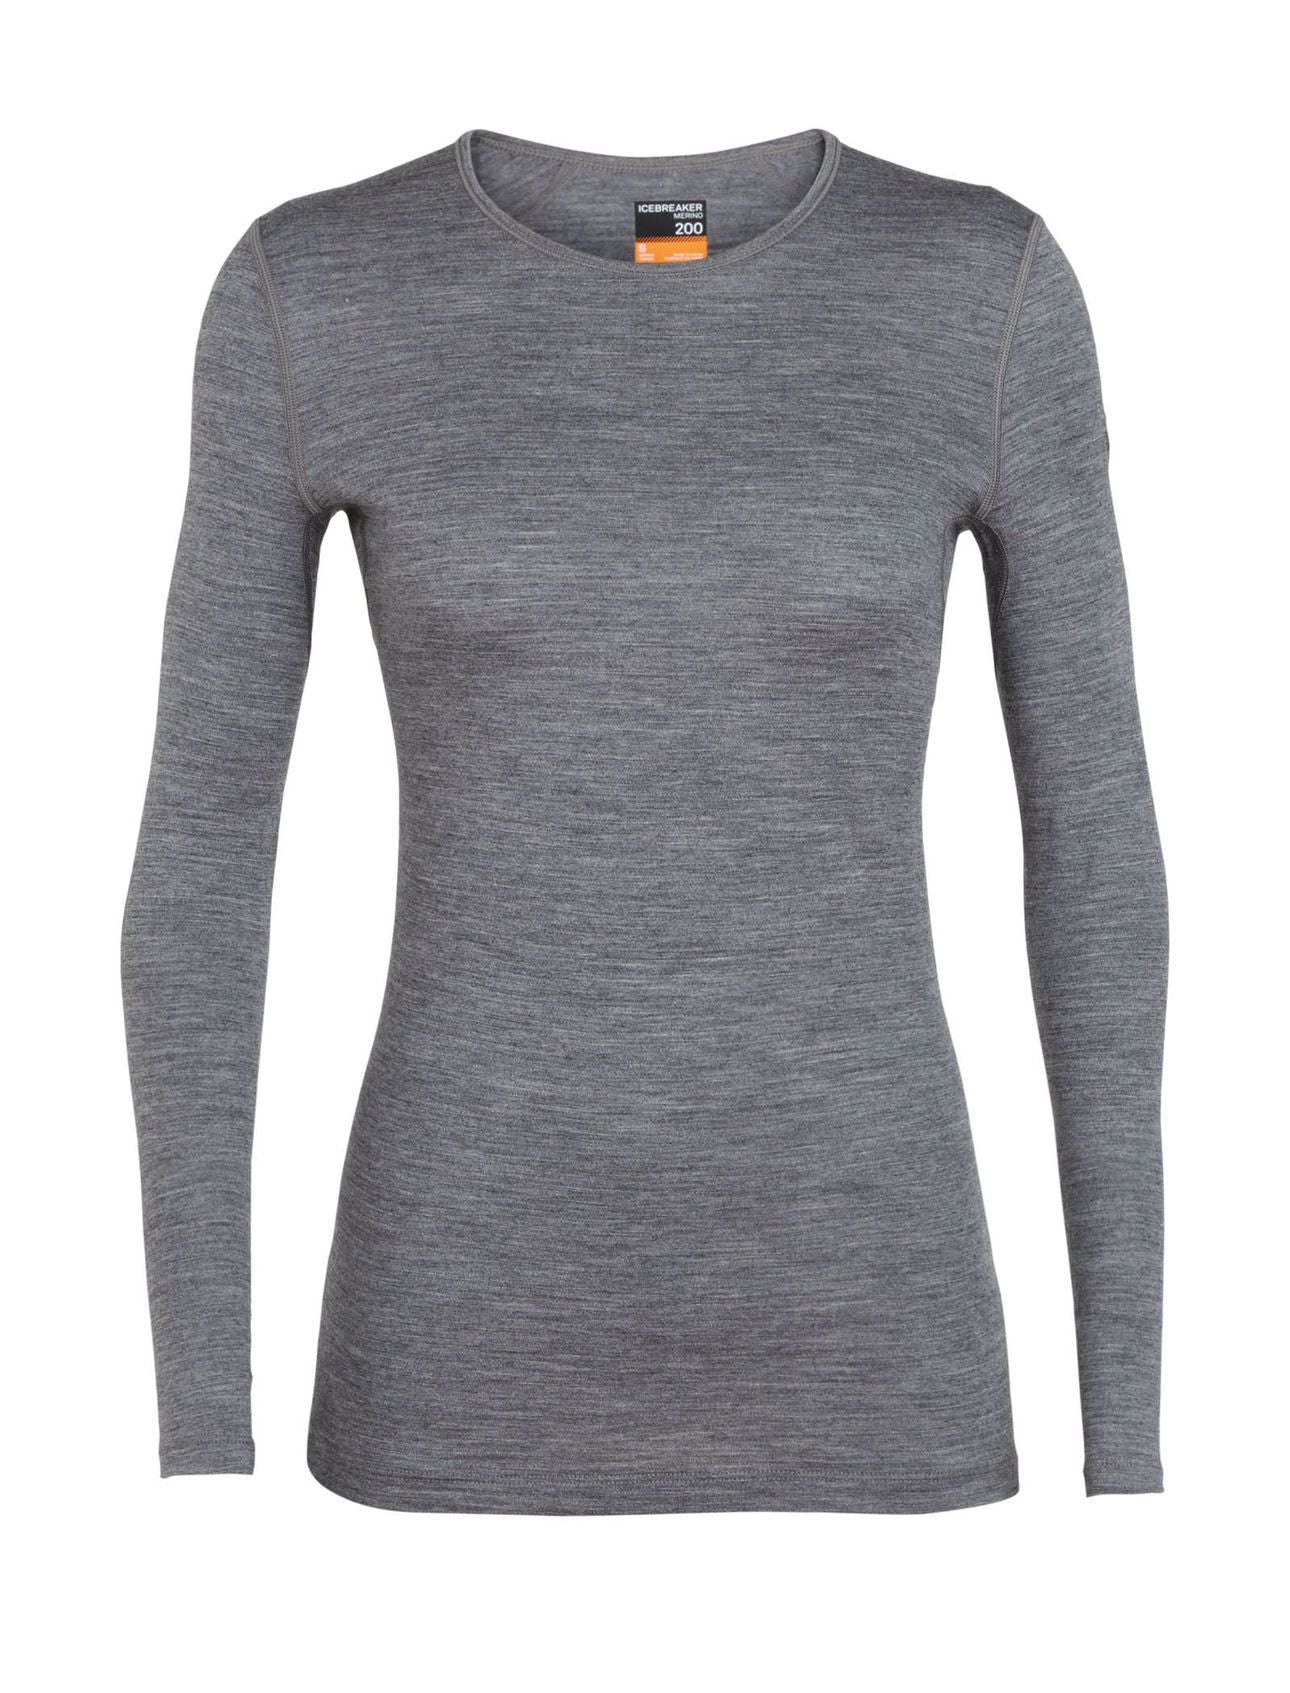 Icebreaker 200 Oasis LS Crewe (Women's) - Gritstone Heather - Find Your Feet Australia Hobart Launceston Tasmania